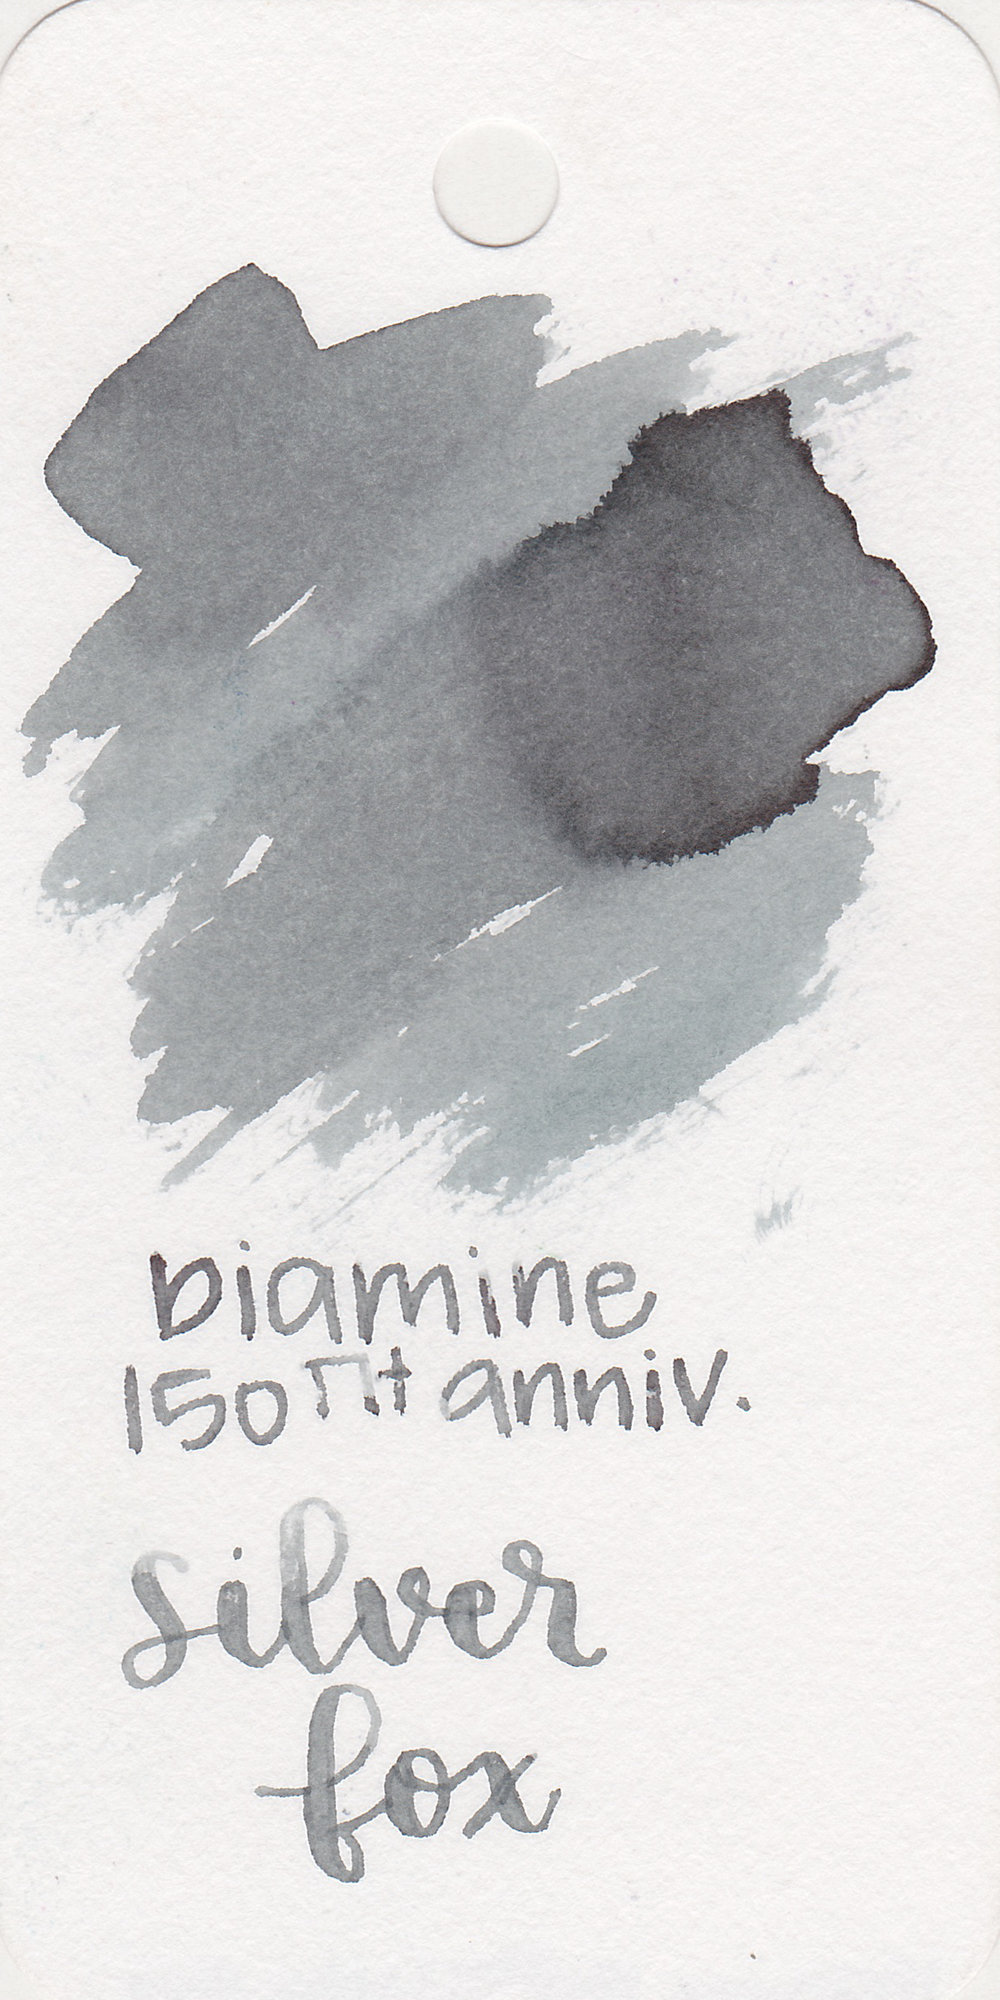 DiamineSilver Fox - I love grey inks. Silver Fox is a beautiful, almost silver ink.